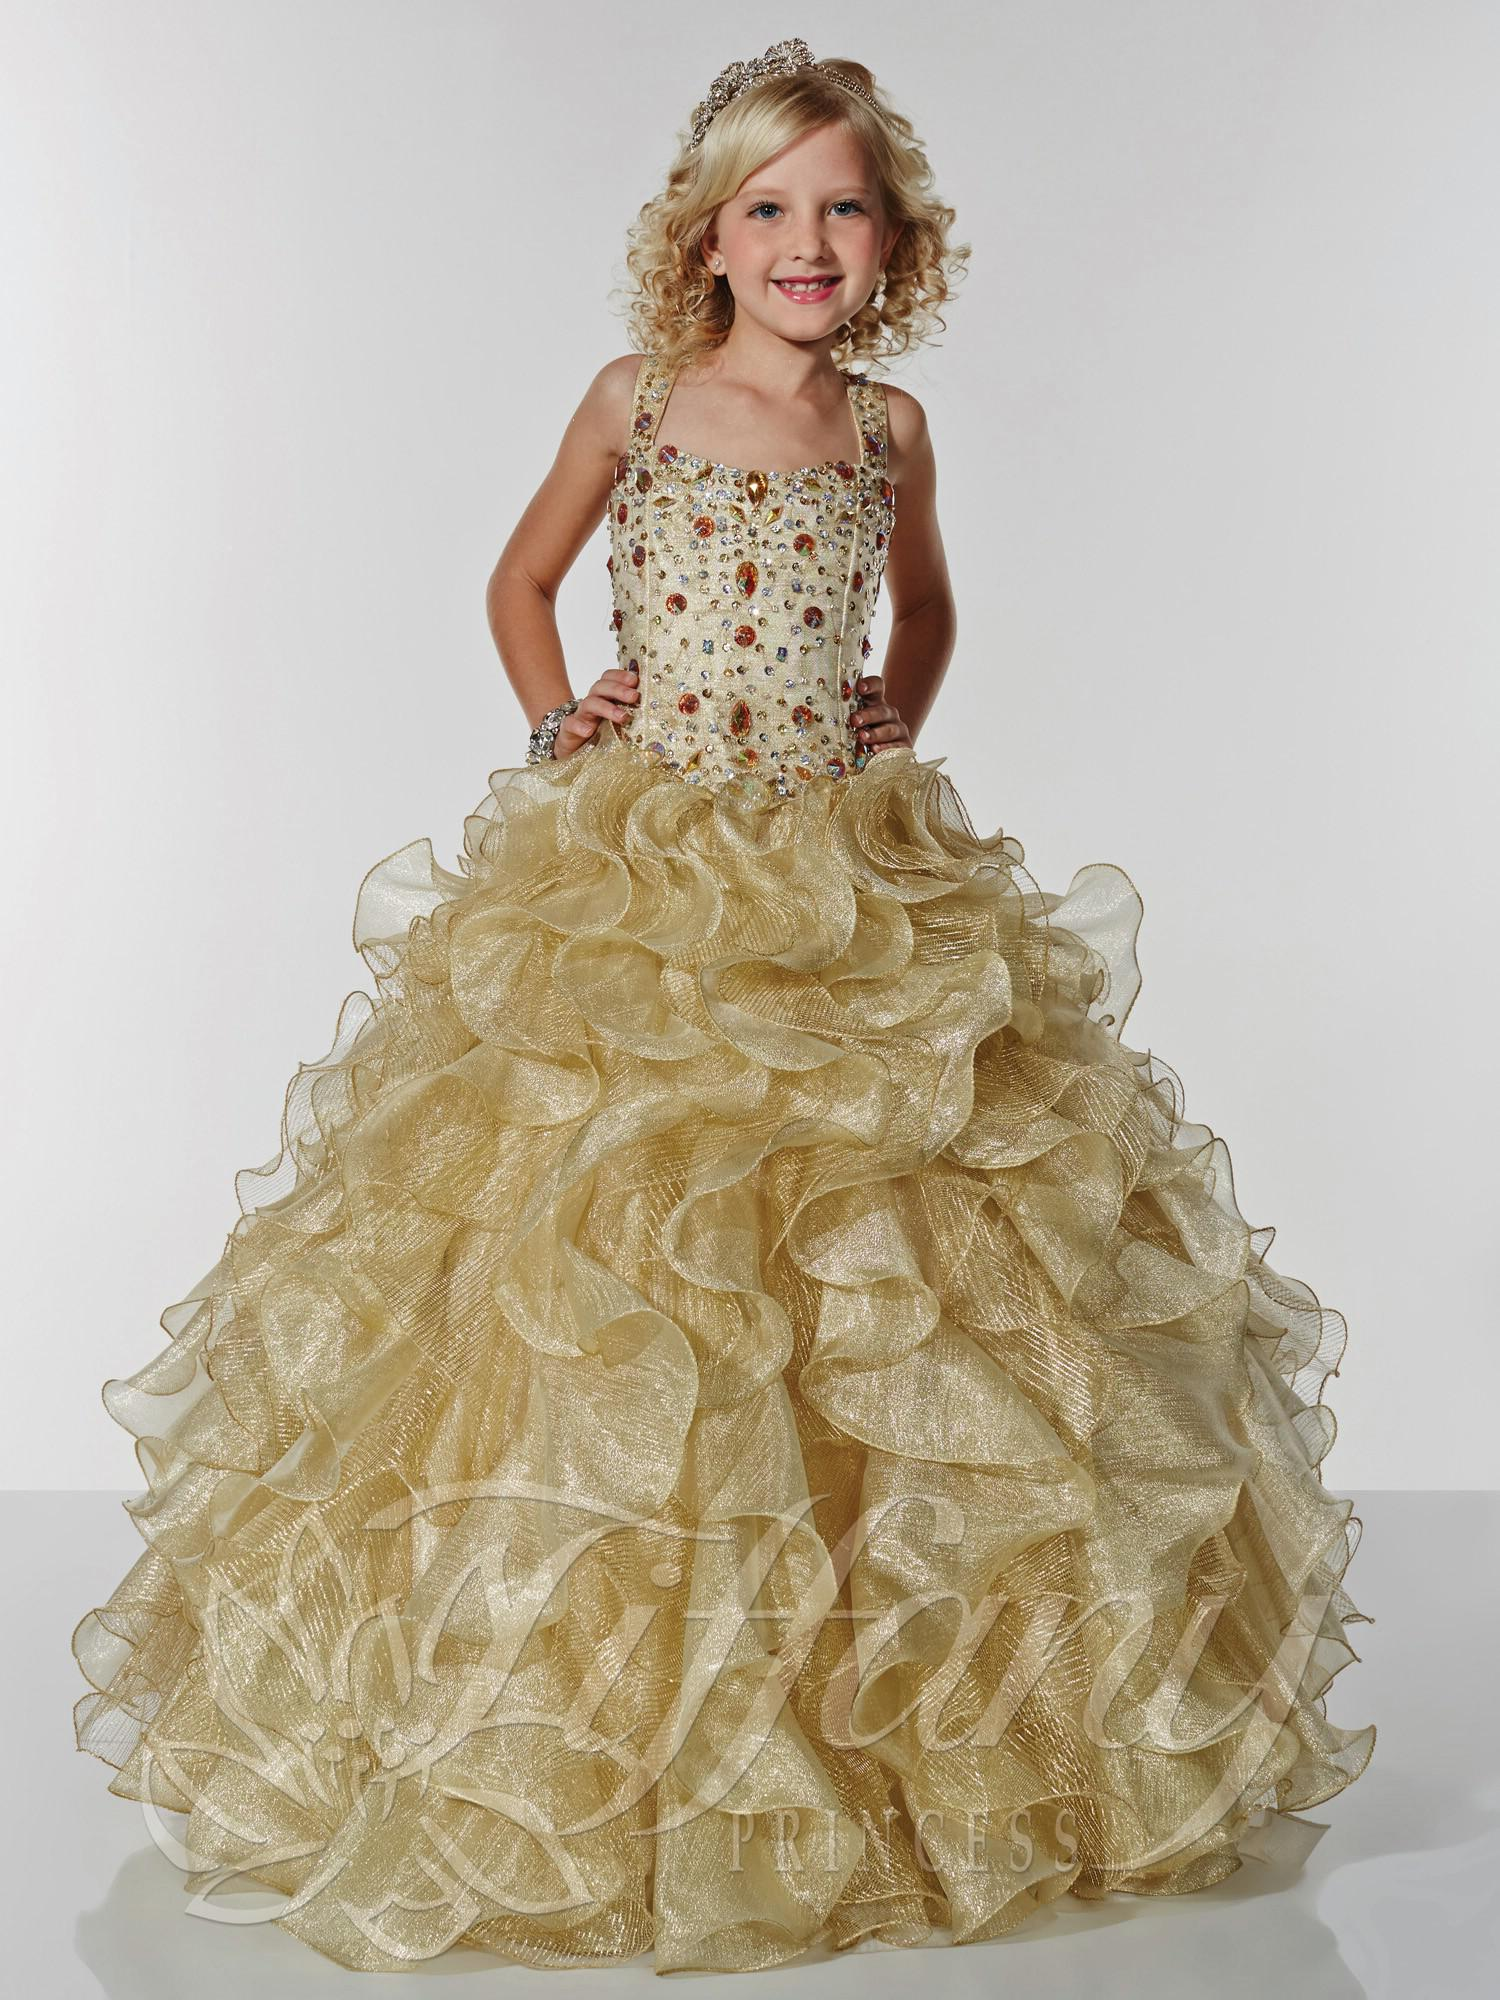 2014 New Hot Golden shiny sweep train spaghetti straps cute girls pageant dresses backless sequins beaded sleeveless ruffles party ball gown